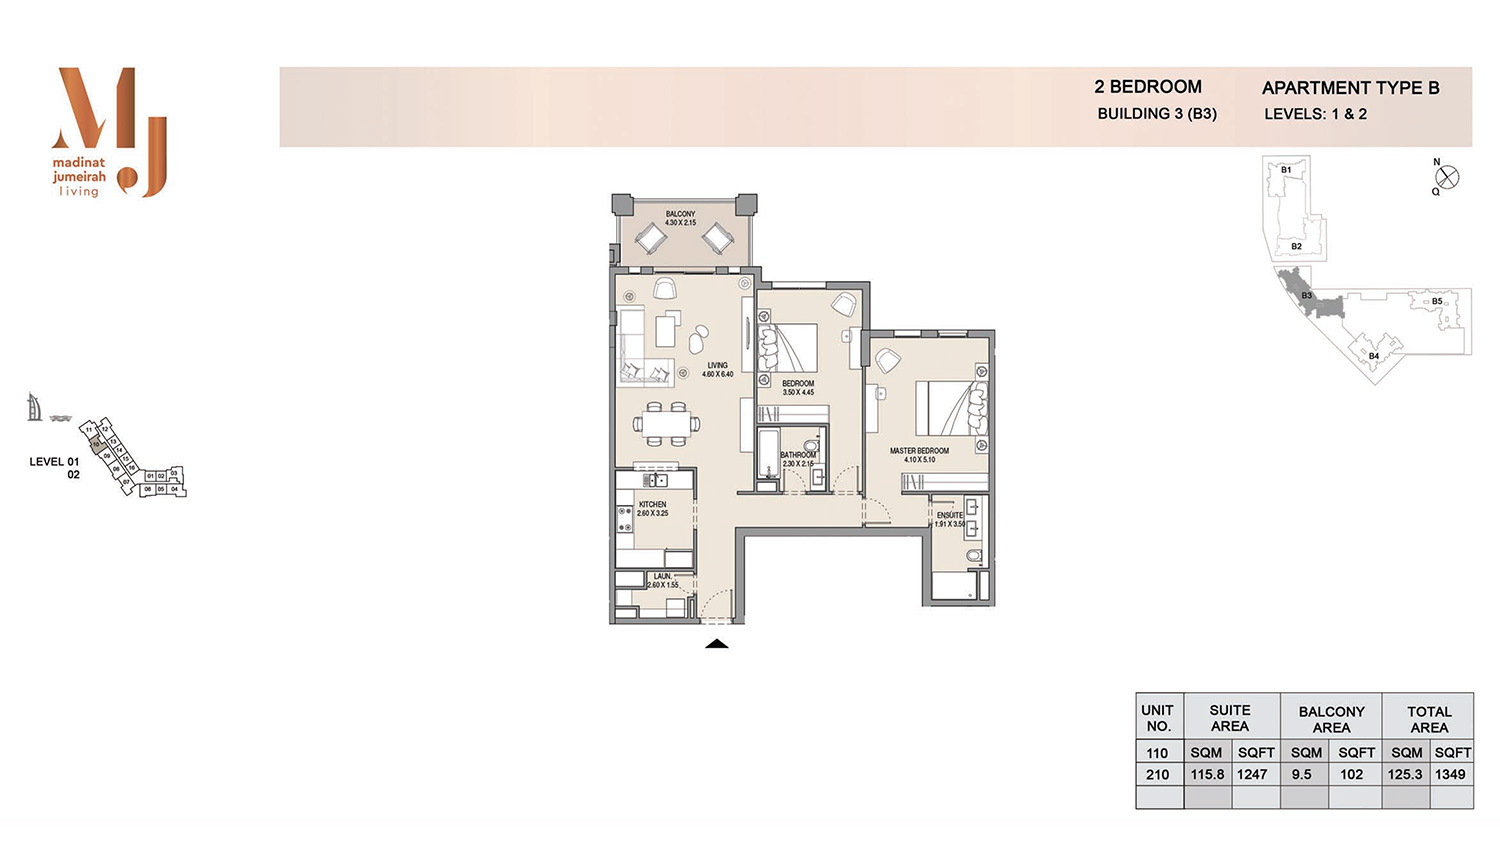 Building3 2 Bedroom, Type A2, Levels 1 to 2, Size 1349 sq.ft